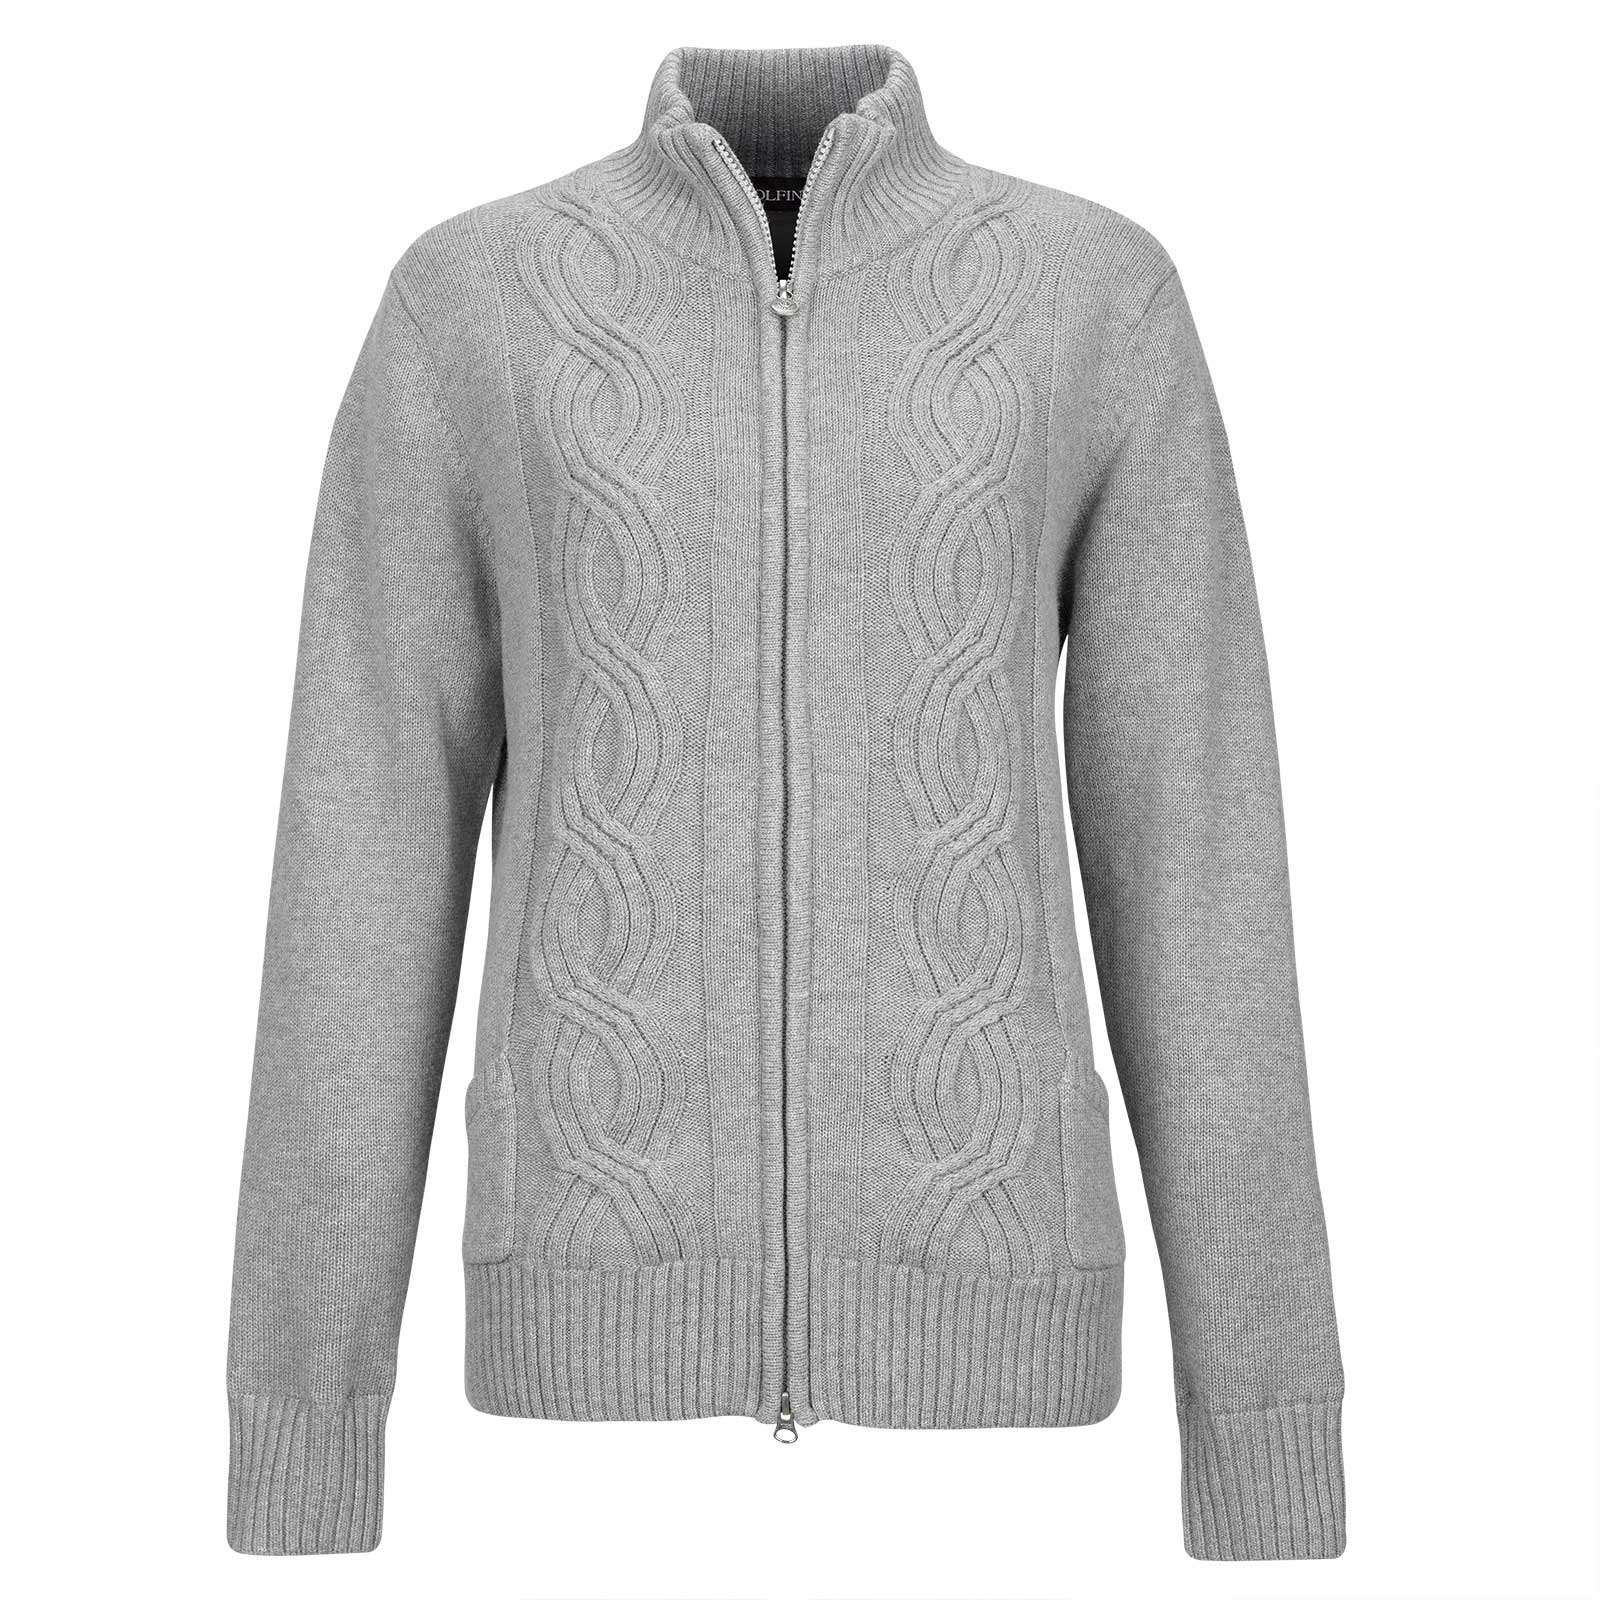 Damen Windstopper Strickjacke aus edlem Merino-Blend